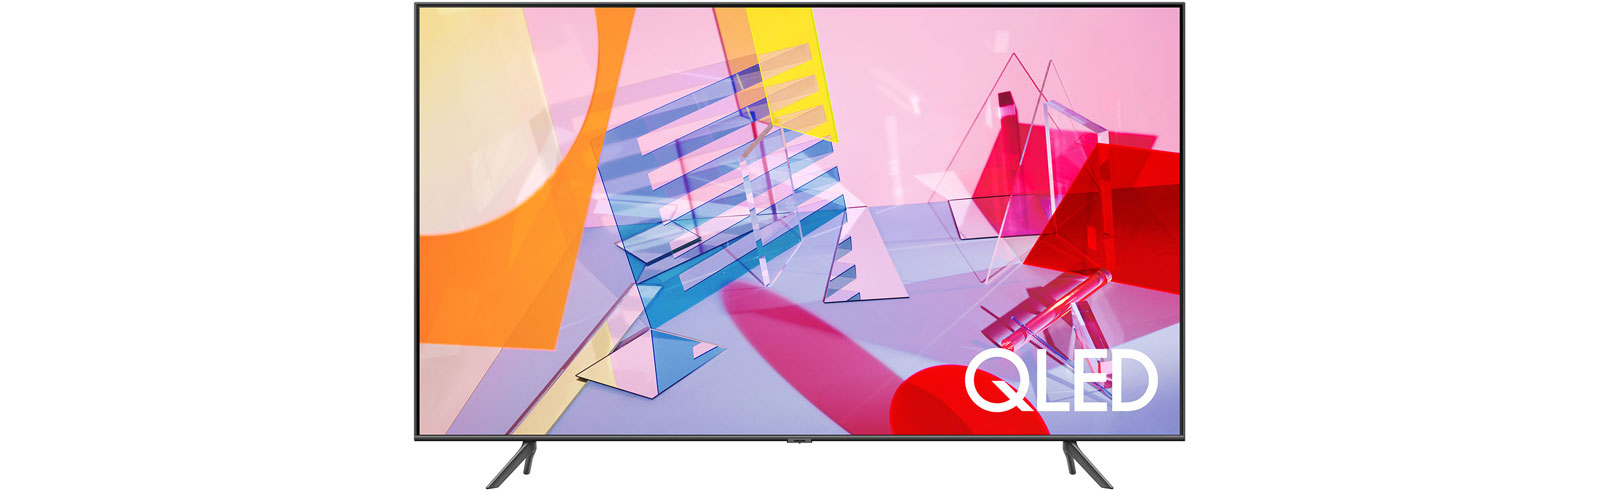 85-inch Samsung Q60T TV (QN85Q60T) specifications and official photos